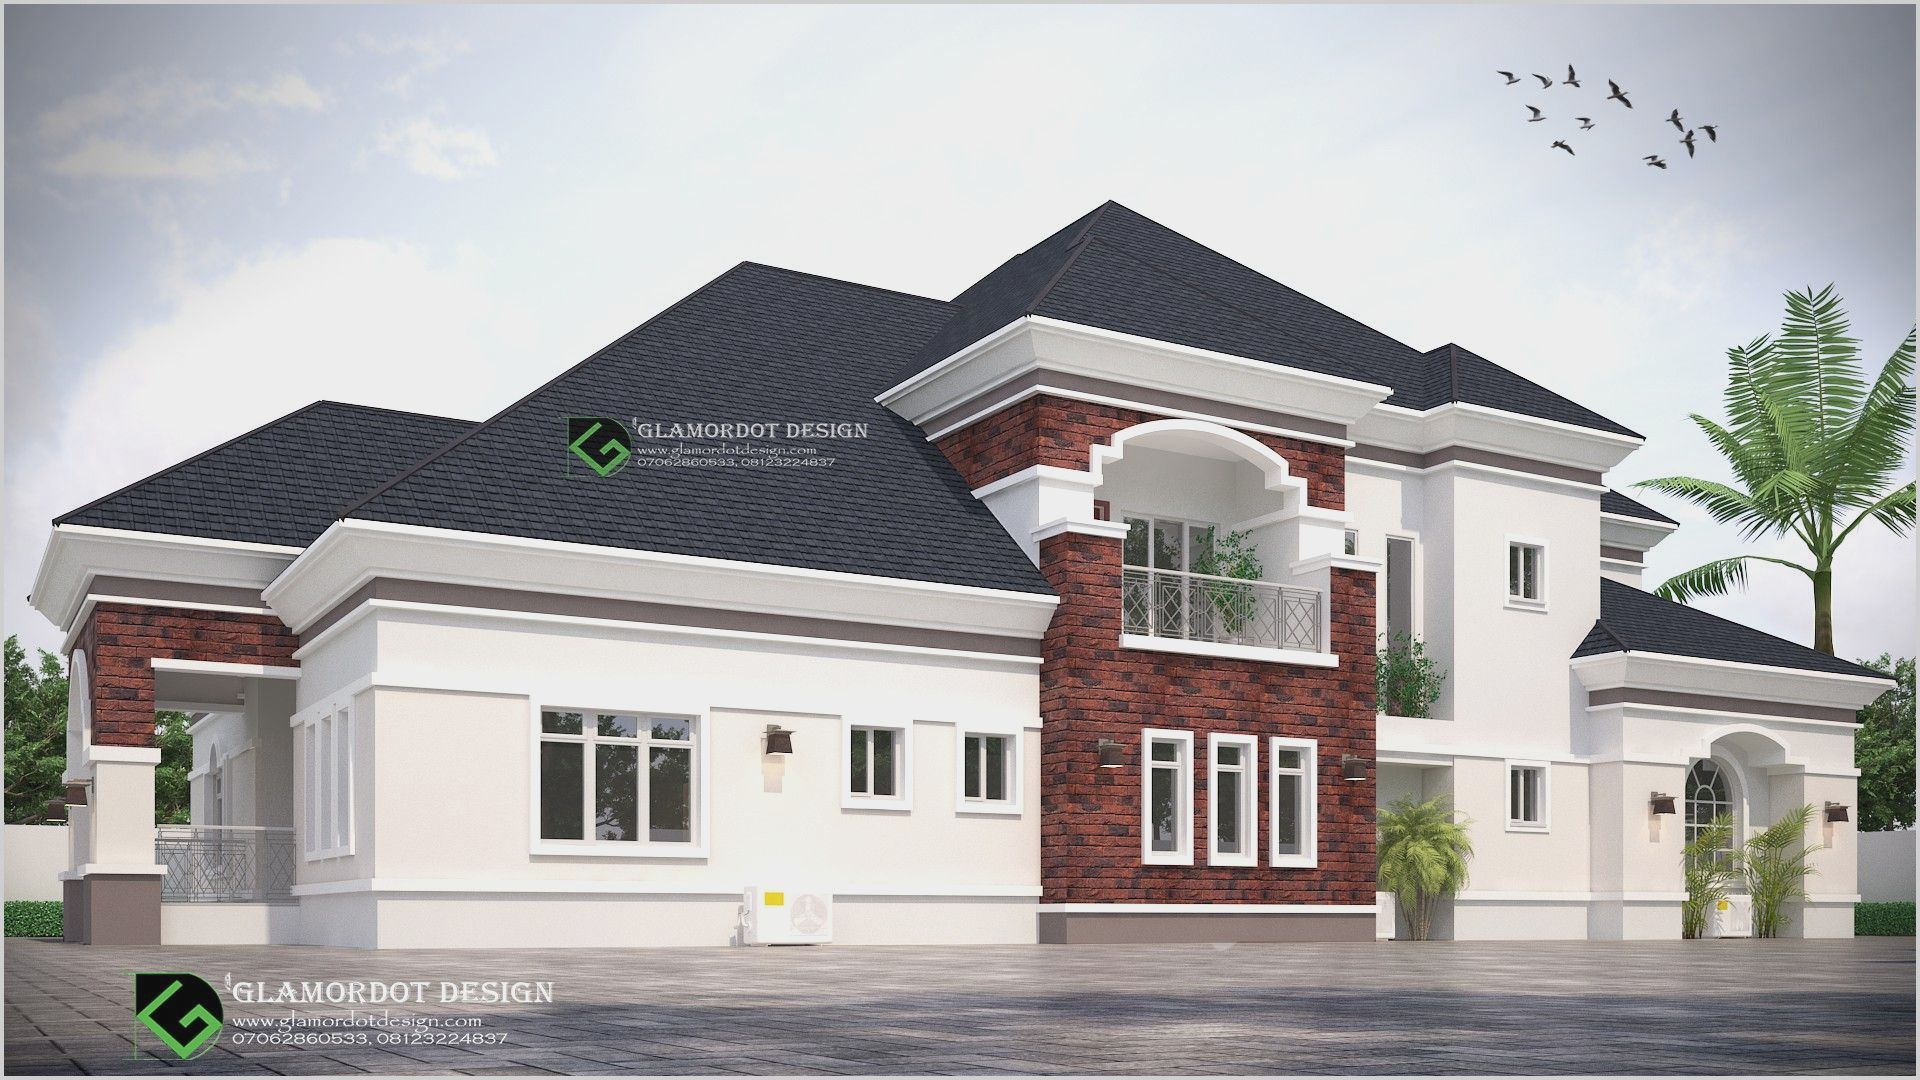 4 Room House Plan Id 14503 House By Maramani House Roof Design Bungalow House Plans Modern Bungalow House